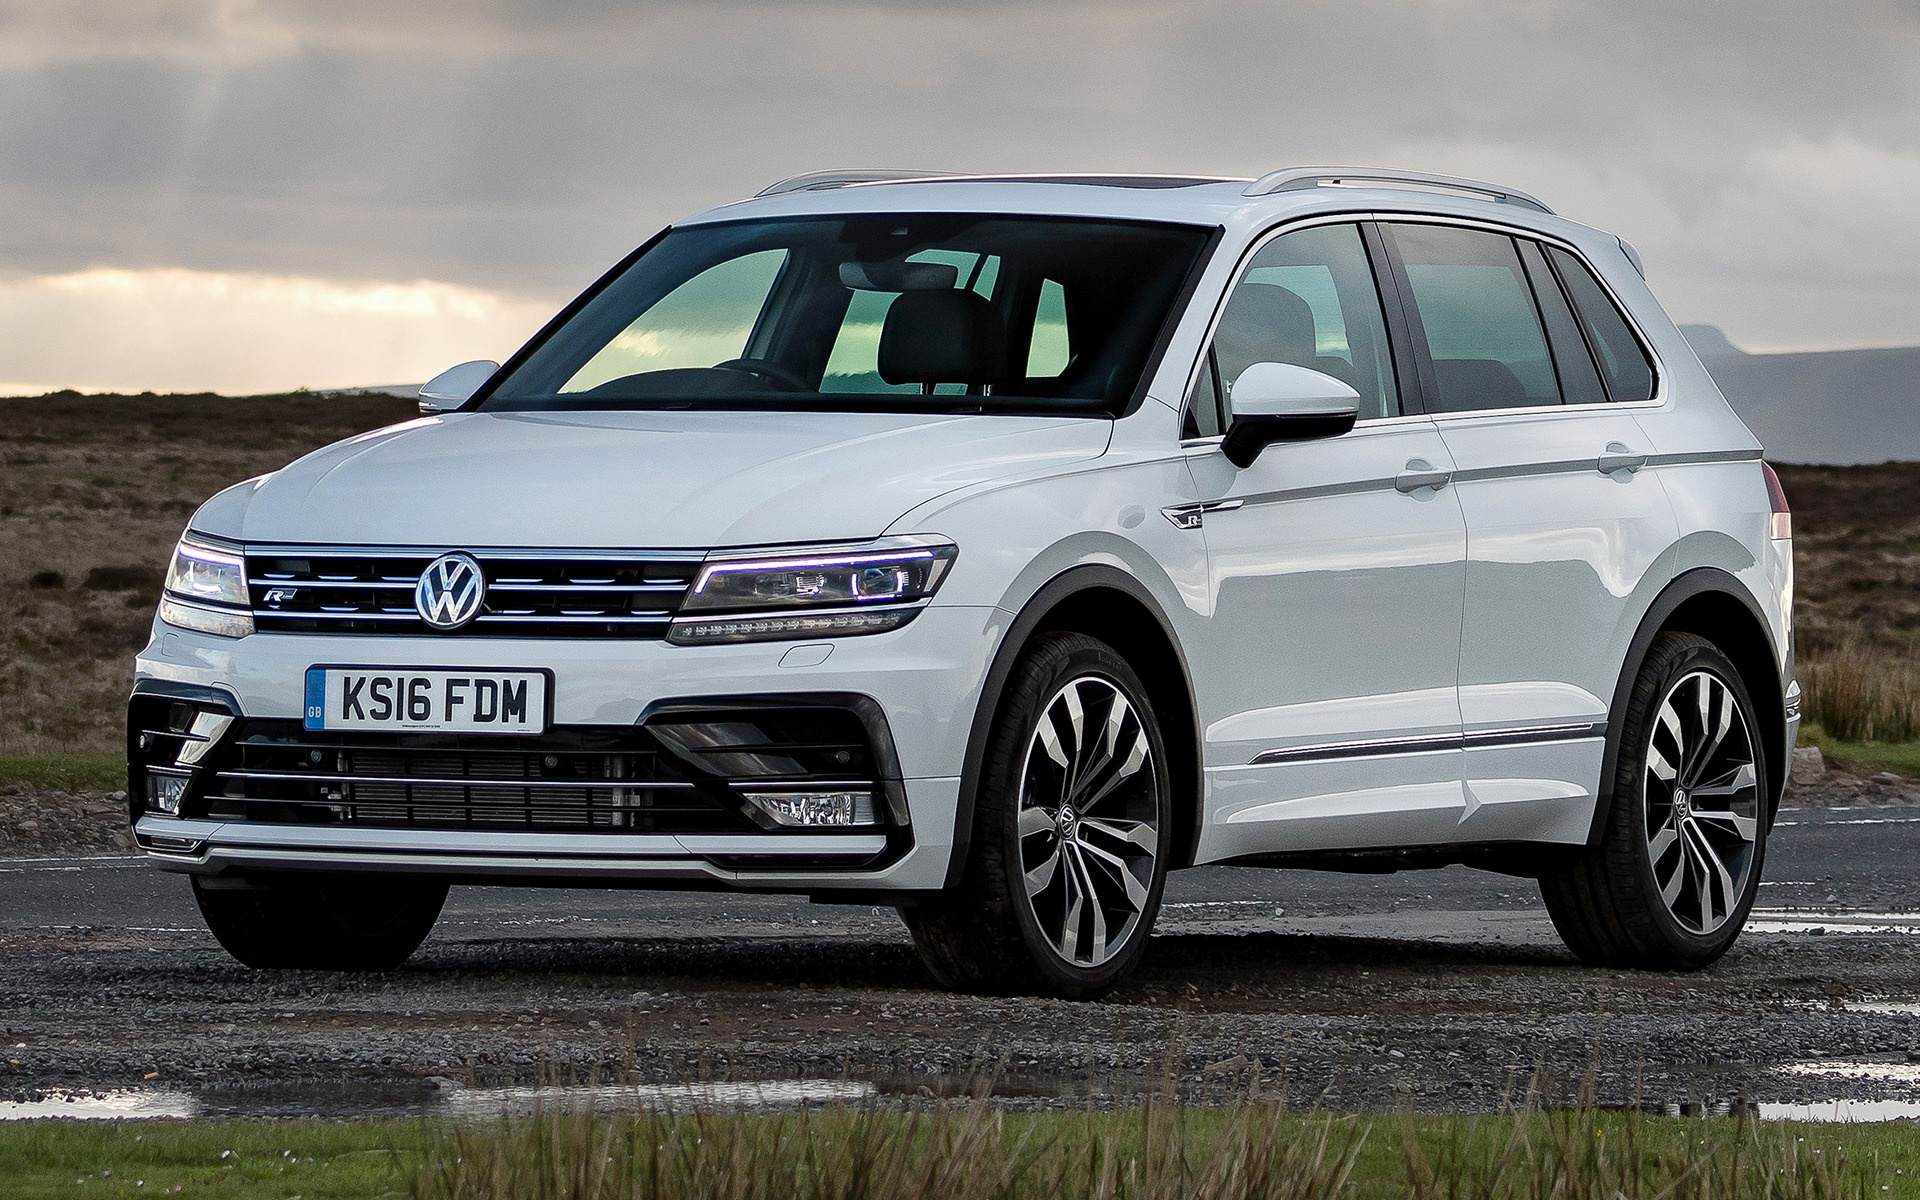 volkswagen tiguan r line 2016 uk wallpapers and hd images car pixel. Black Bedroom Furniture Sets. Home Design Ideas